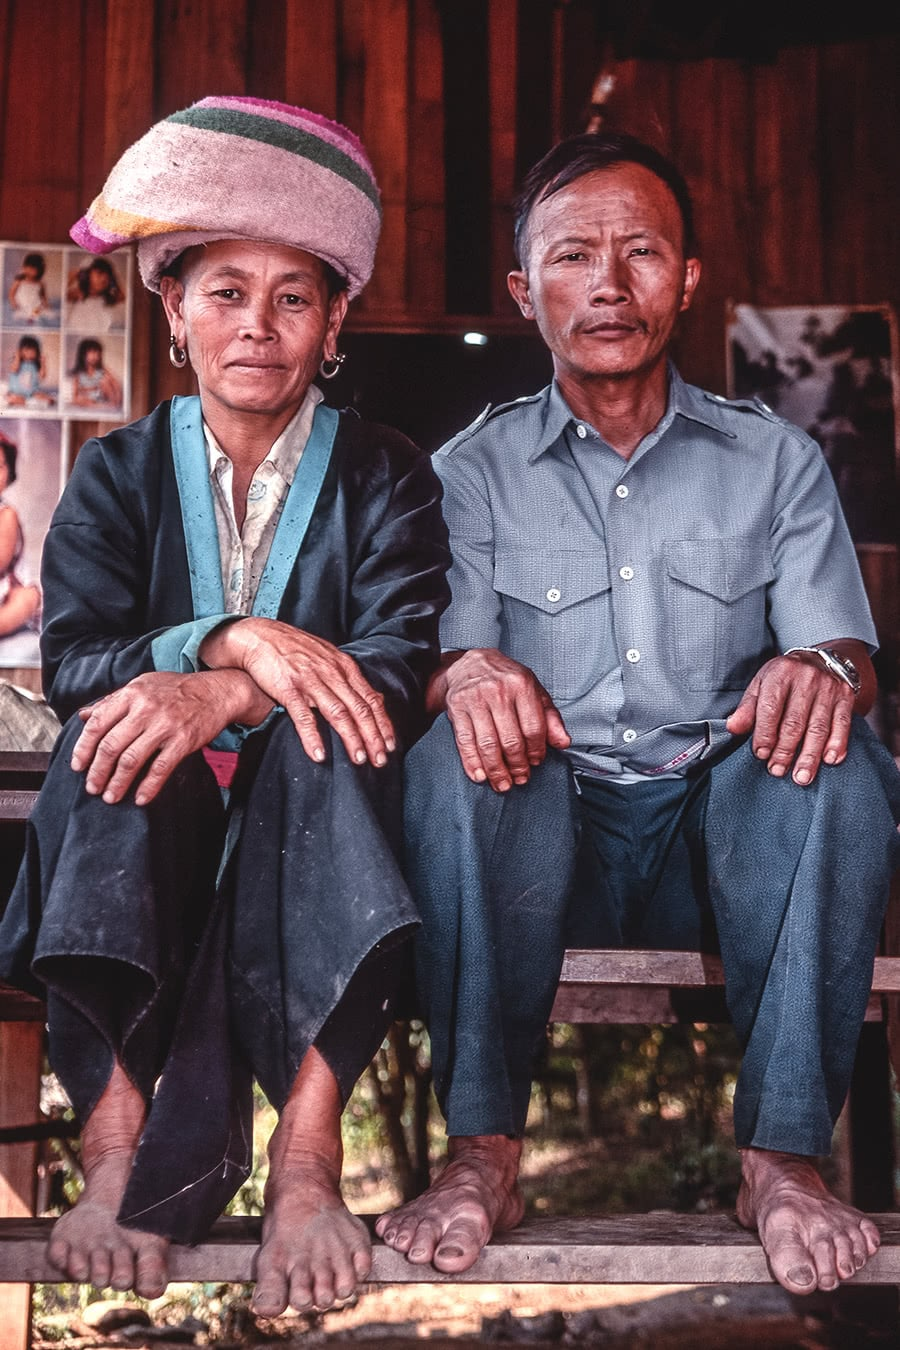 A Hmong couple posing for a photo in North Thailand in the early 1990's.